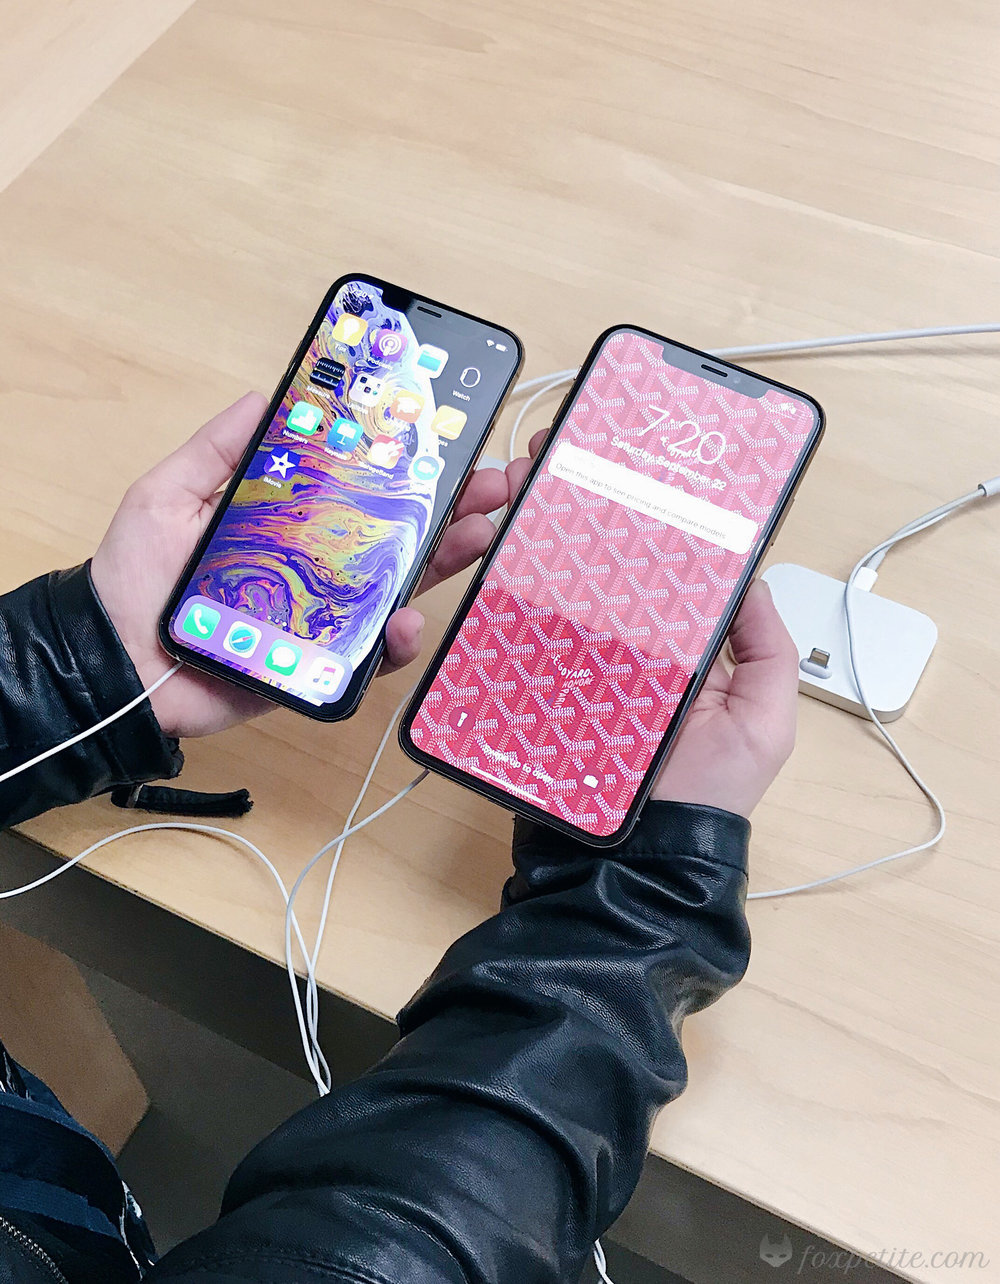 Left: iPhone Xs. Right: iPhone Xs Max